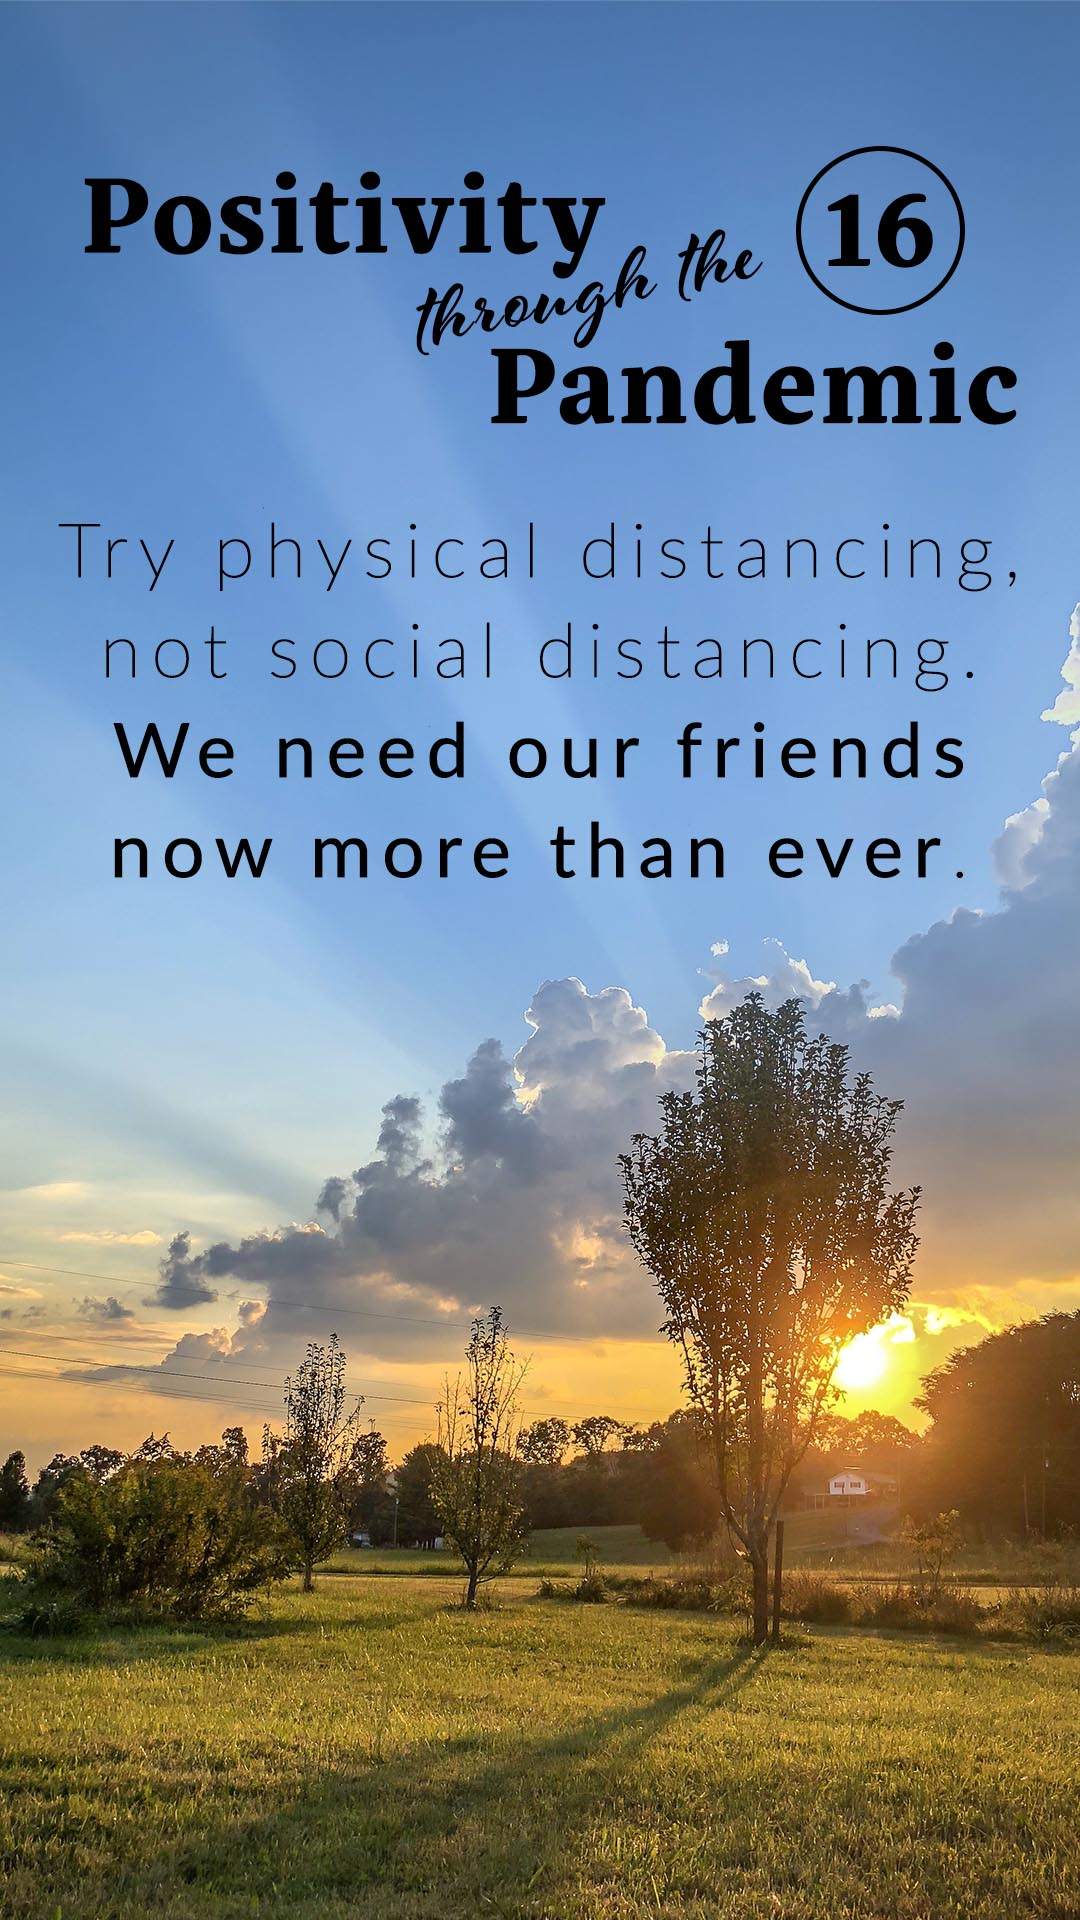 Positivity through the Pandemic #16: Try physical distancing not social distancing